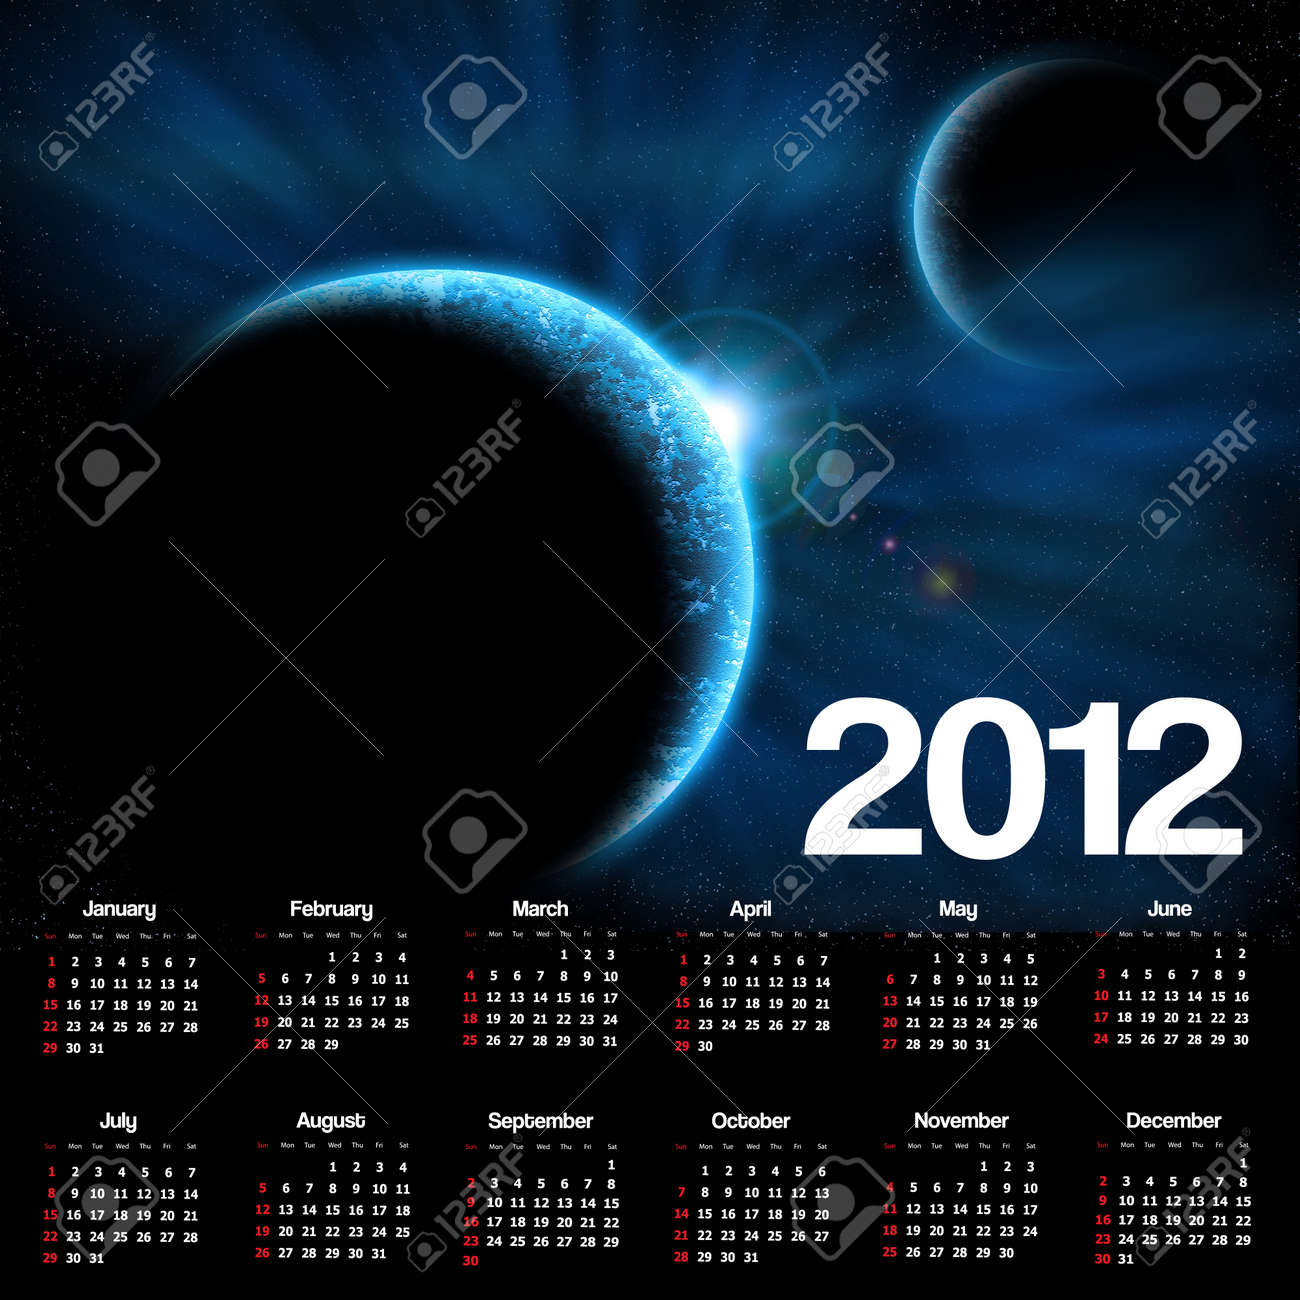 2012 calendar with space scene Stock Photo - 11656834